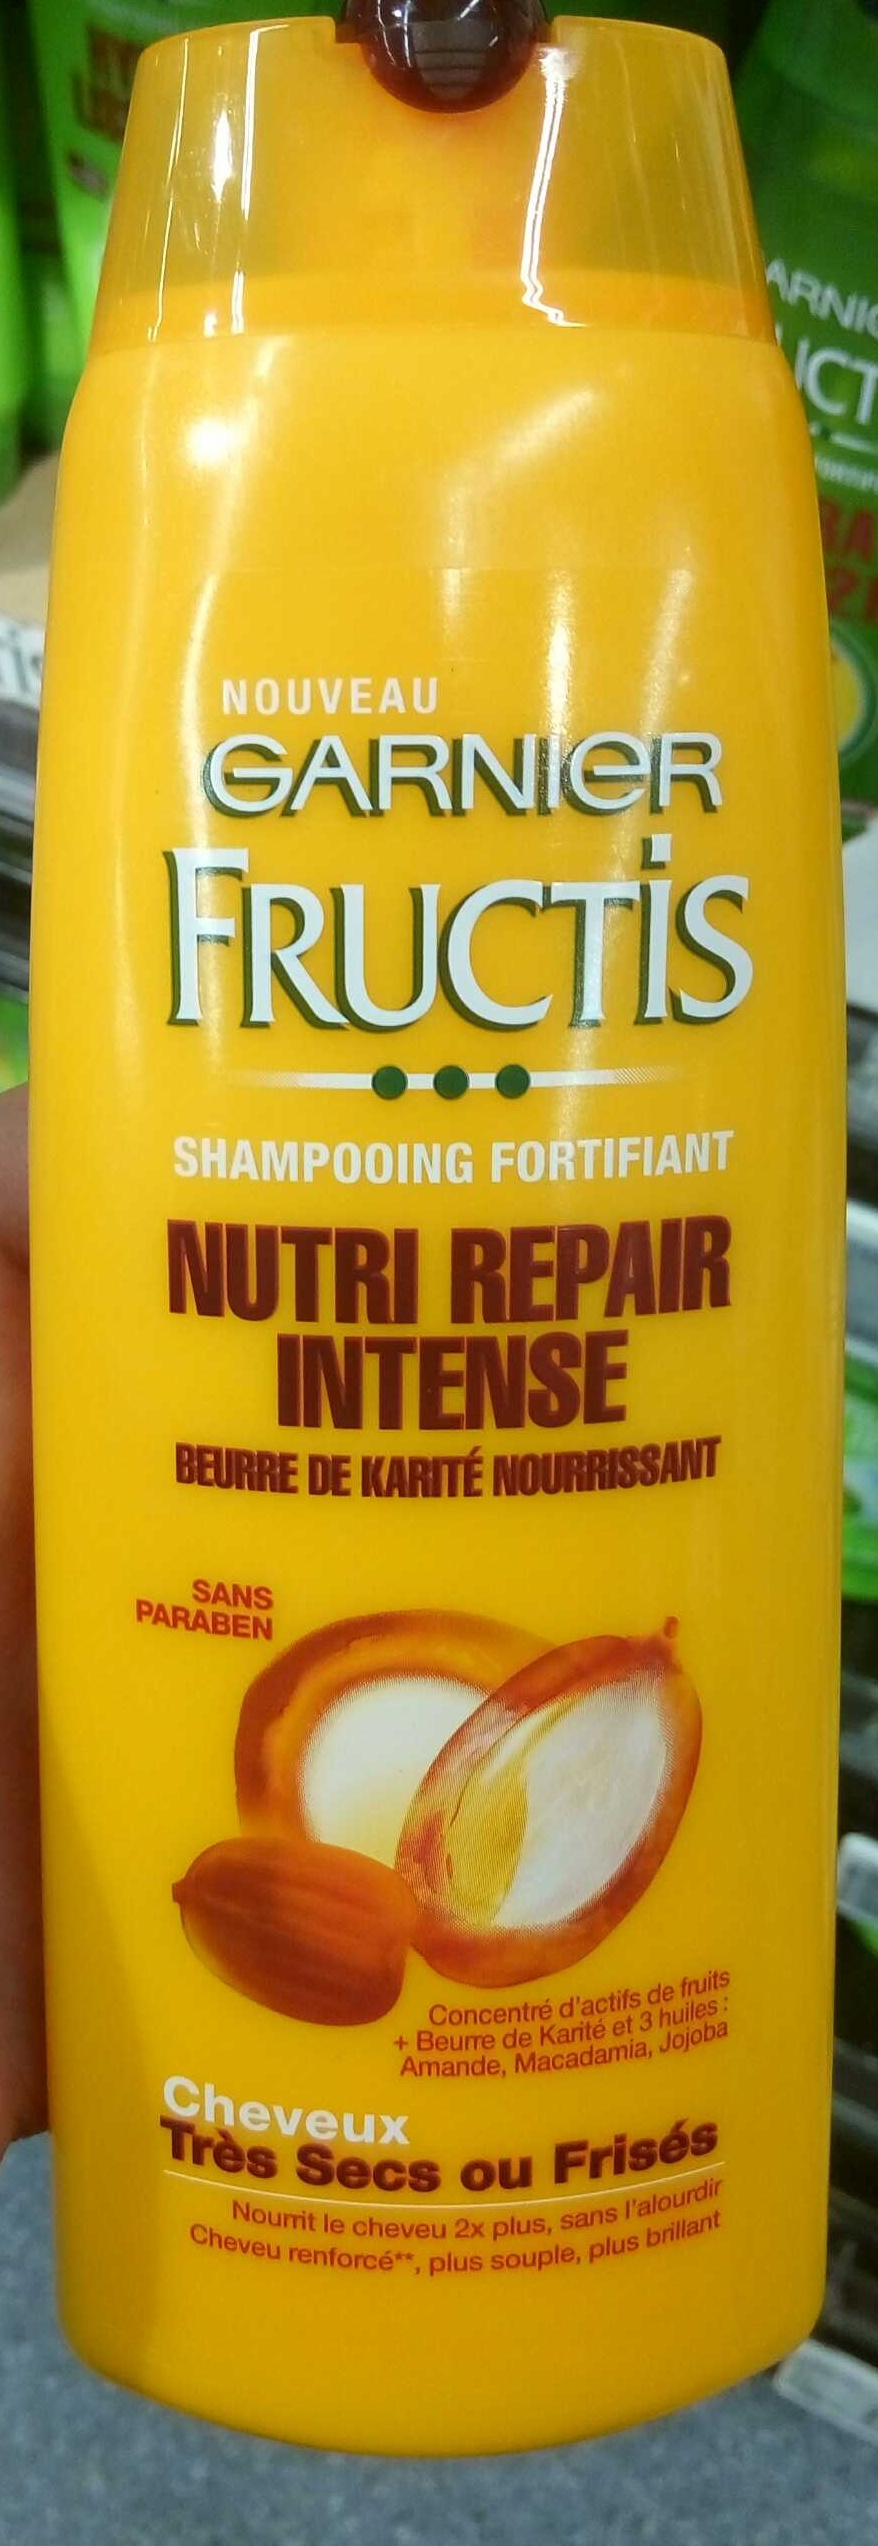 Fructis Nutri Repair Intense - Product - fr